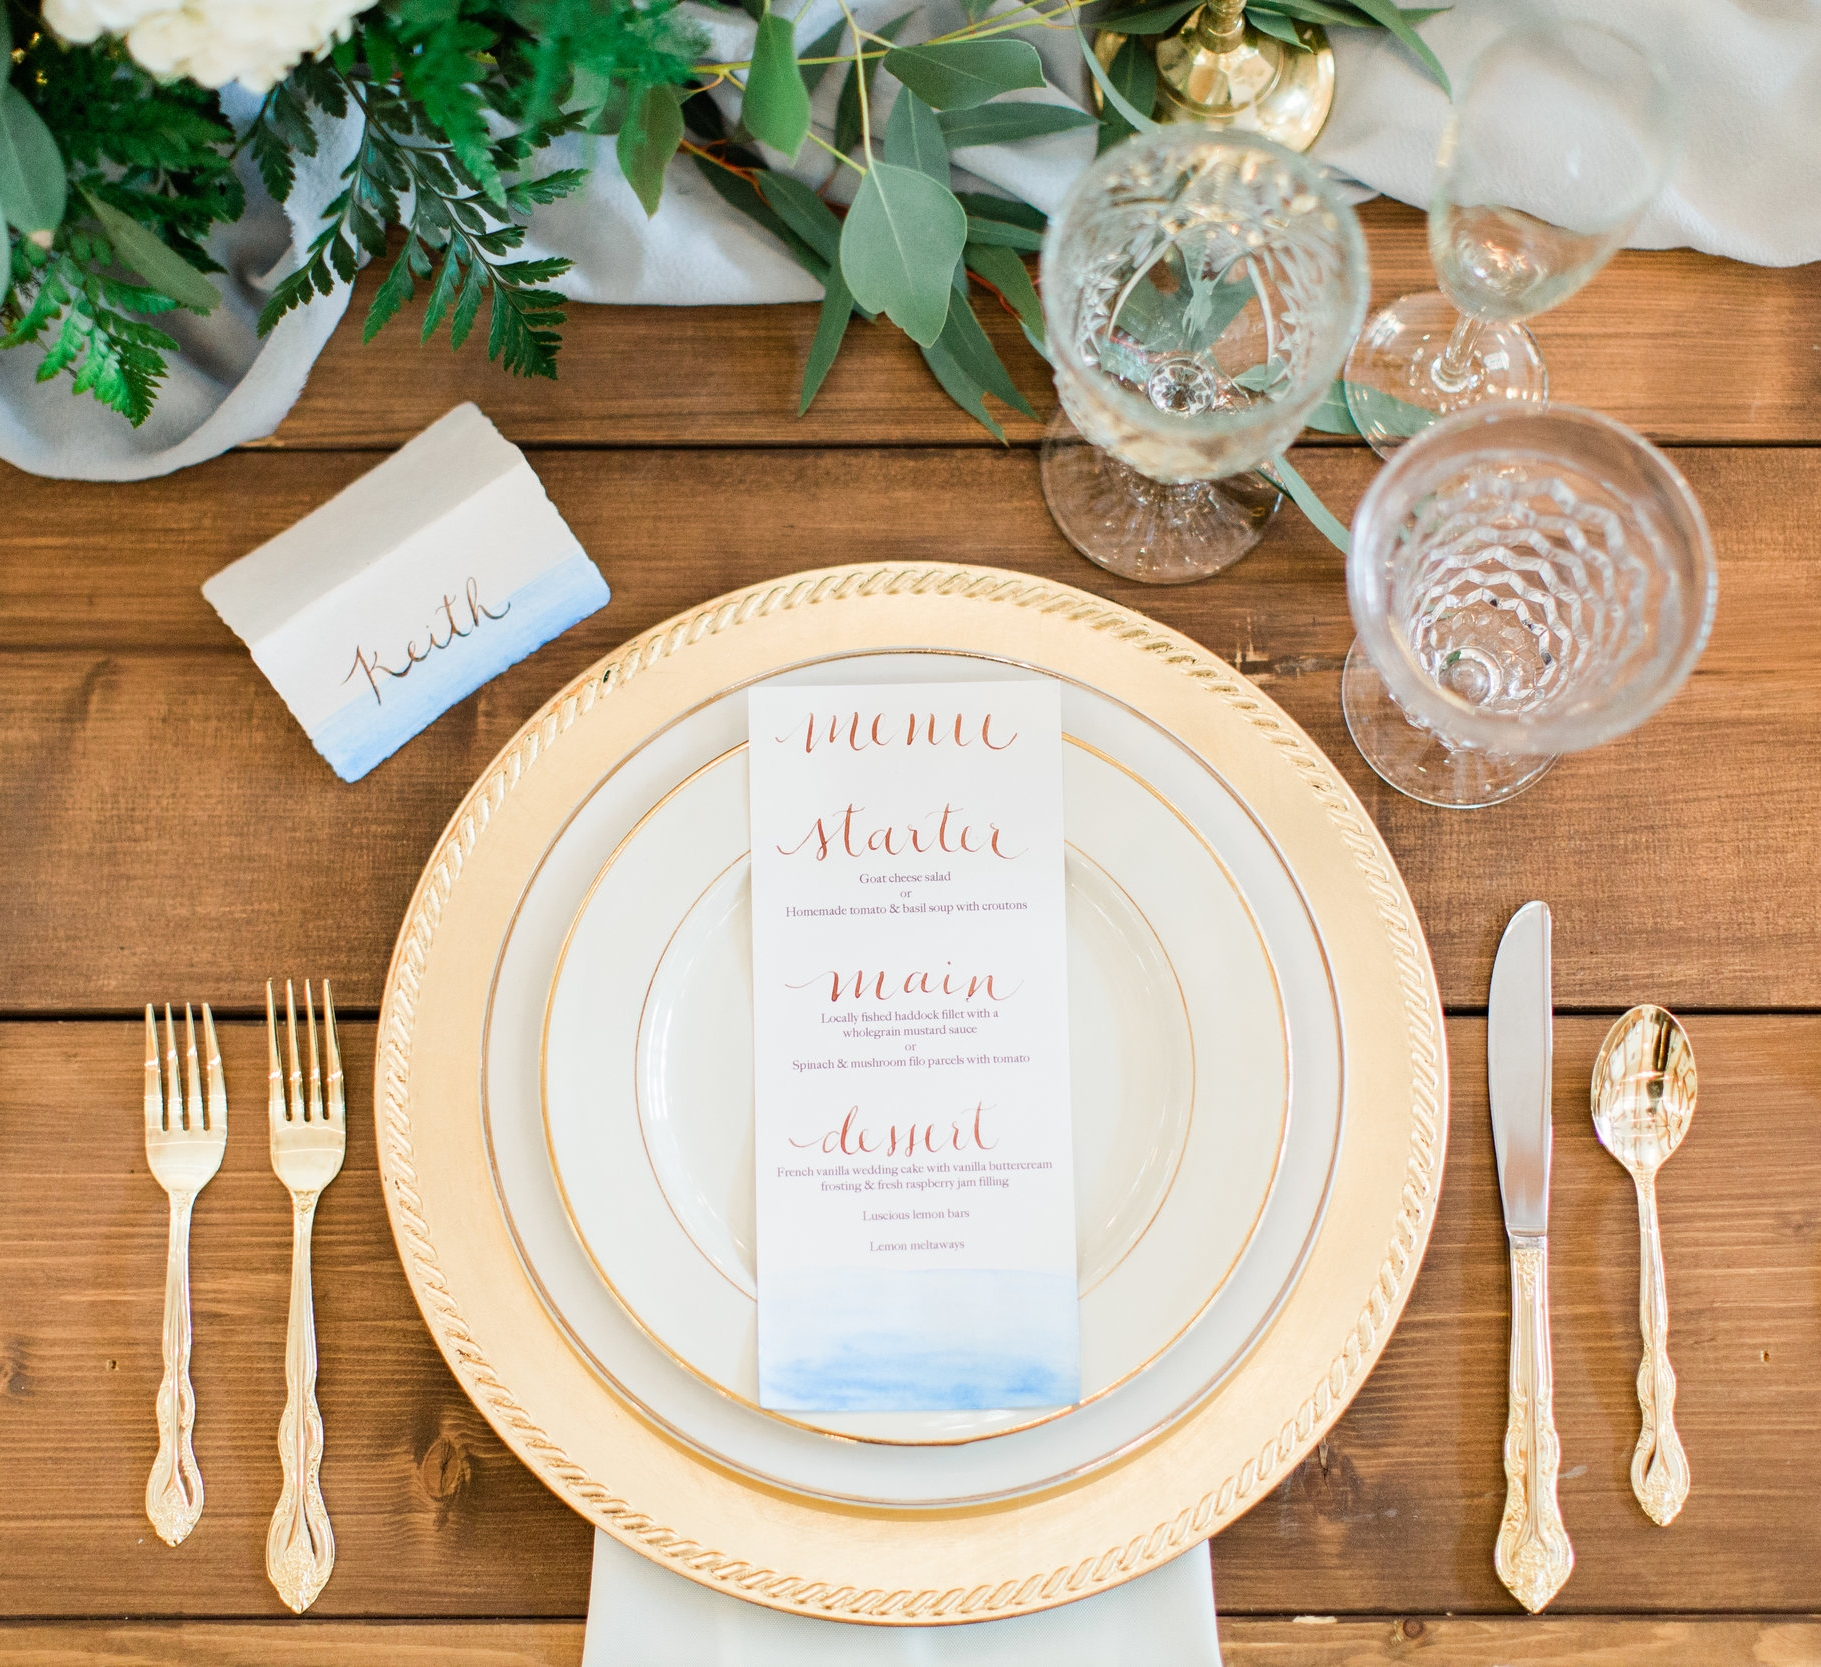 Photography | Belen Isabel Photography  Planning & Styling | To Be Loved Events & Anela Events  Rentals | Moxie Events, Danner & Soli &Glass Slipper Rentals  Floral Design | Flowers & Thyme  Table Runner | Tono & Co.  Calligraphy | To Be Loved Events